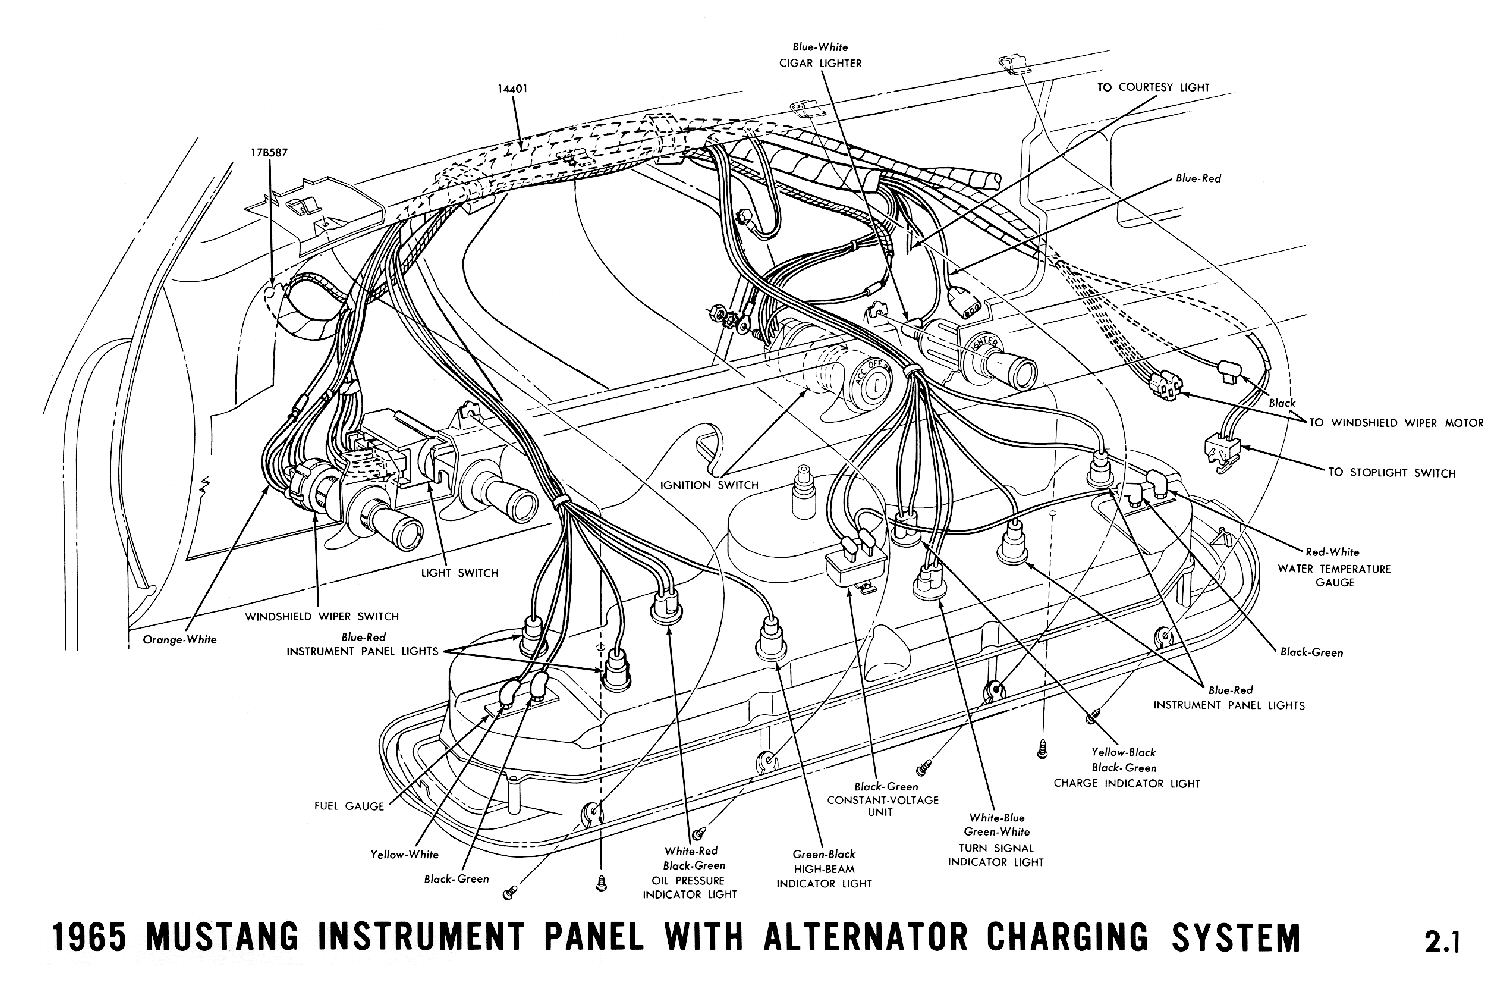 1965a 1965 mustang wiring diagrams average joe restoration 1965 mustang ignition switch wiring diagram at gsmx.co